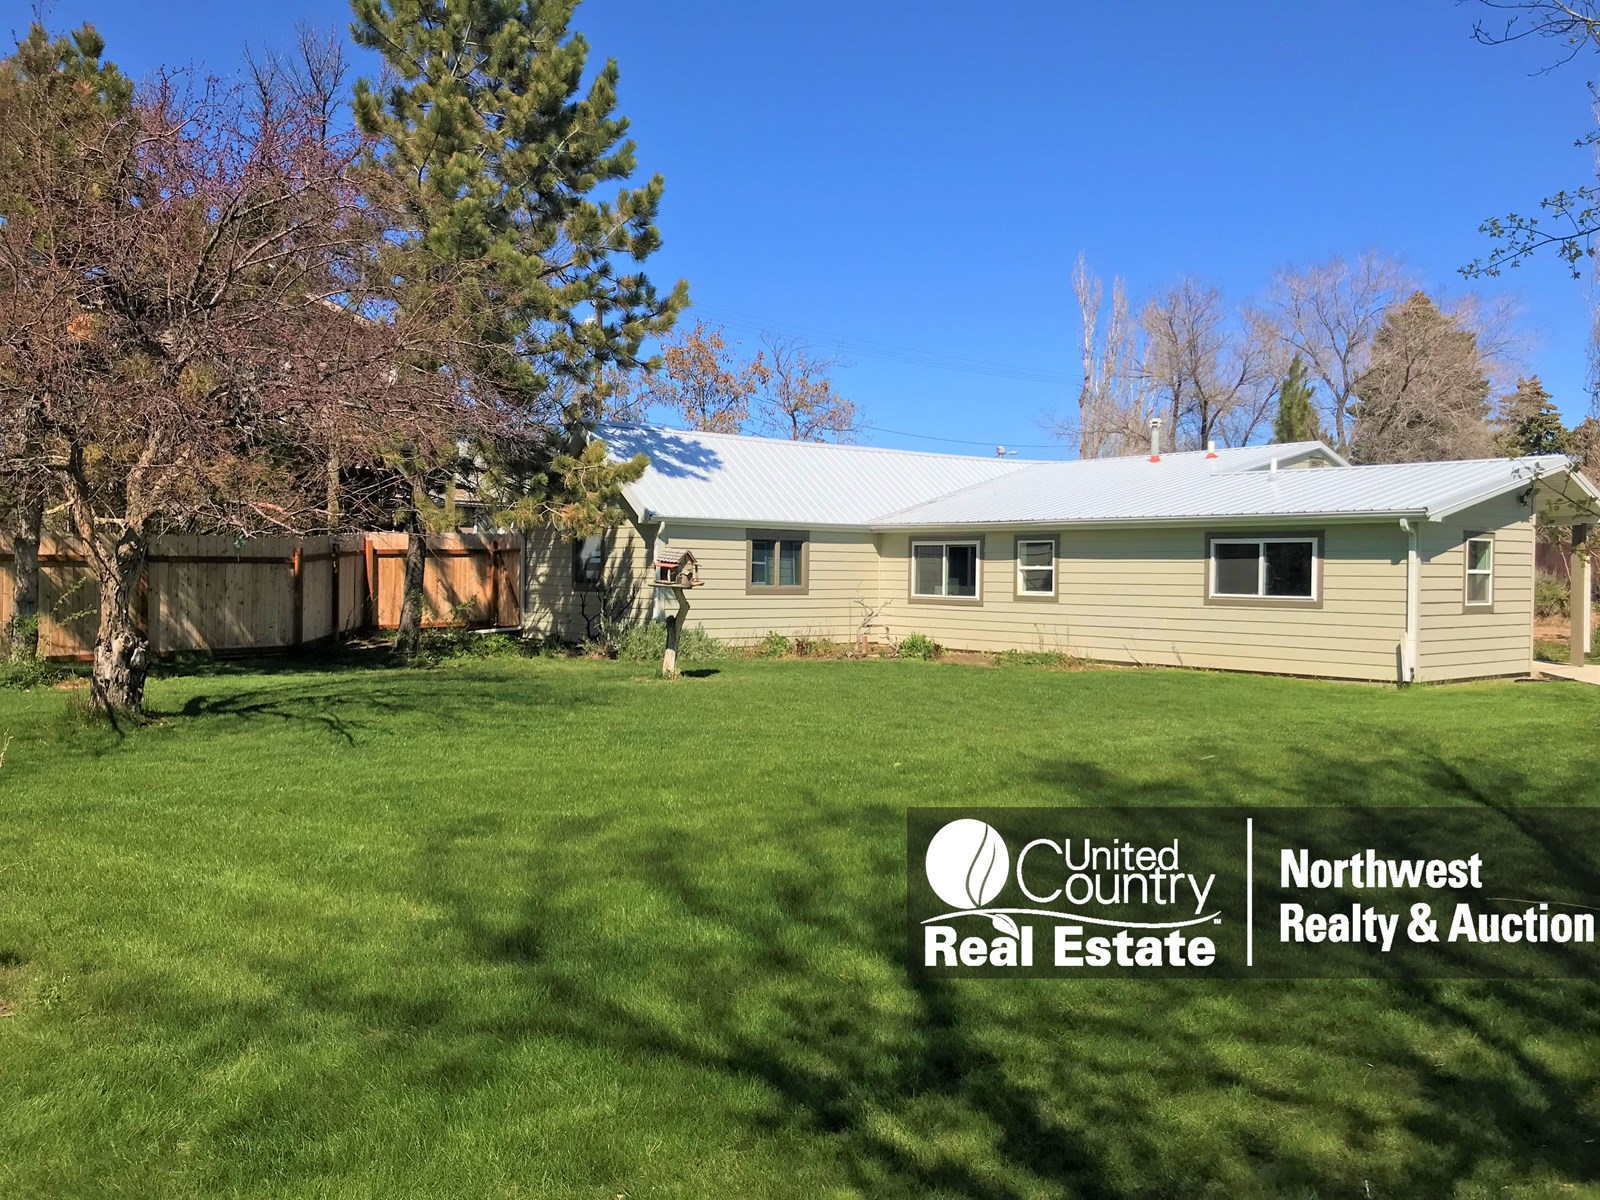 Malta MT Small Acreage Private 1 Level Home Landscaped Yard